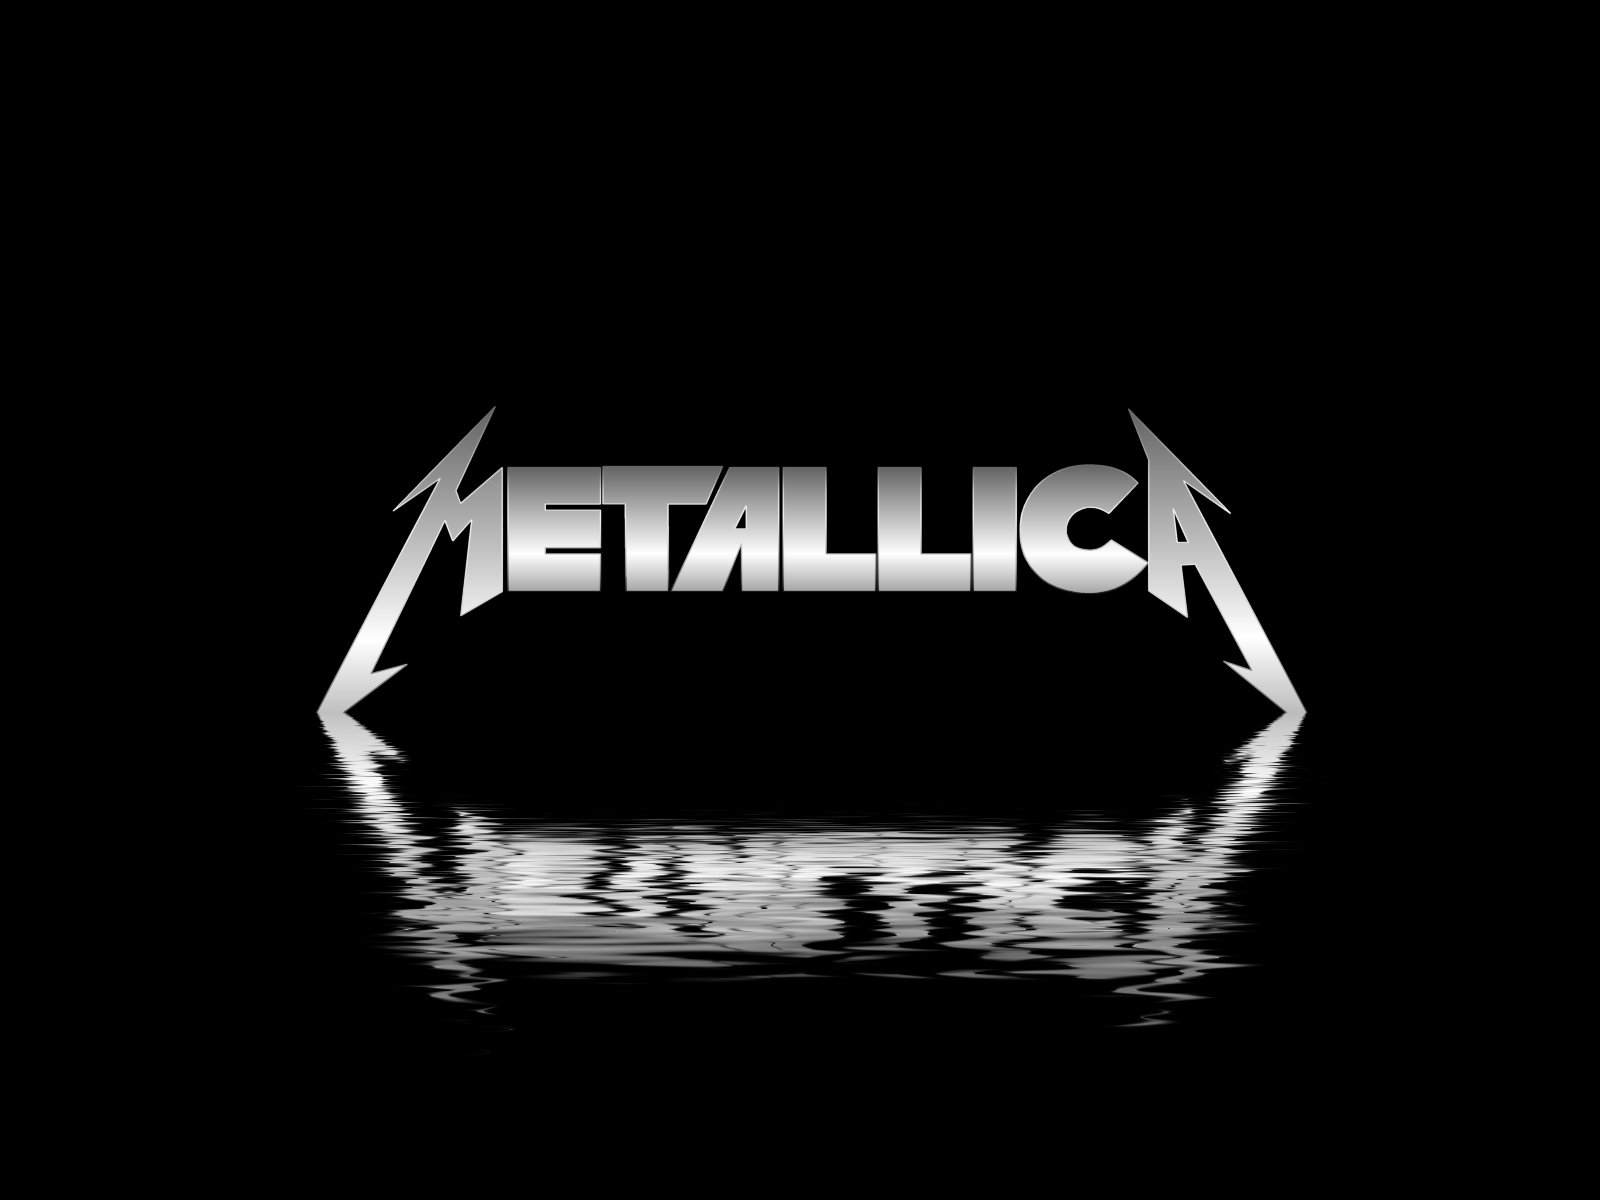 Central Wallpaper: Metallica Logos HD Desktop Wallpapers